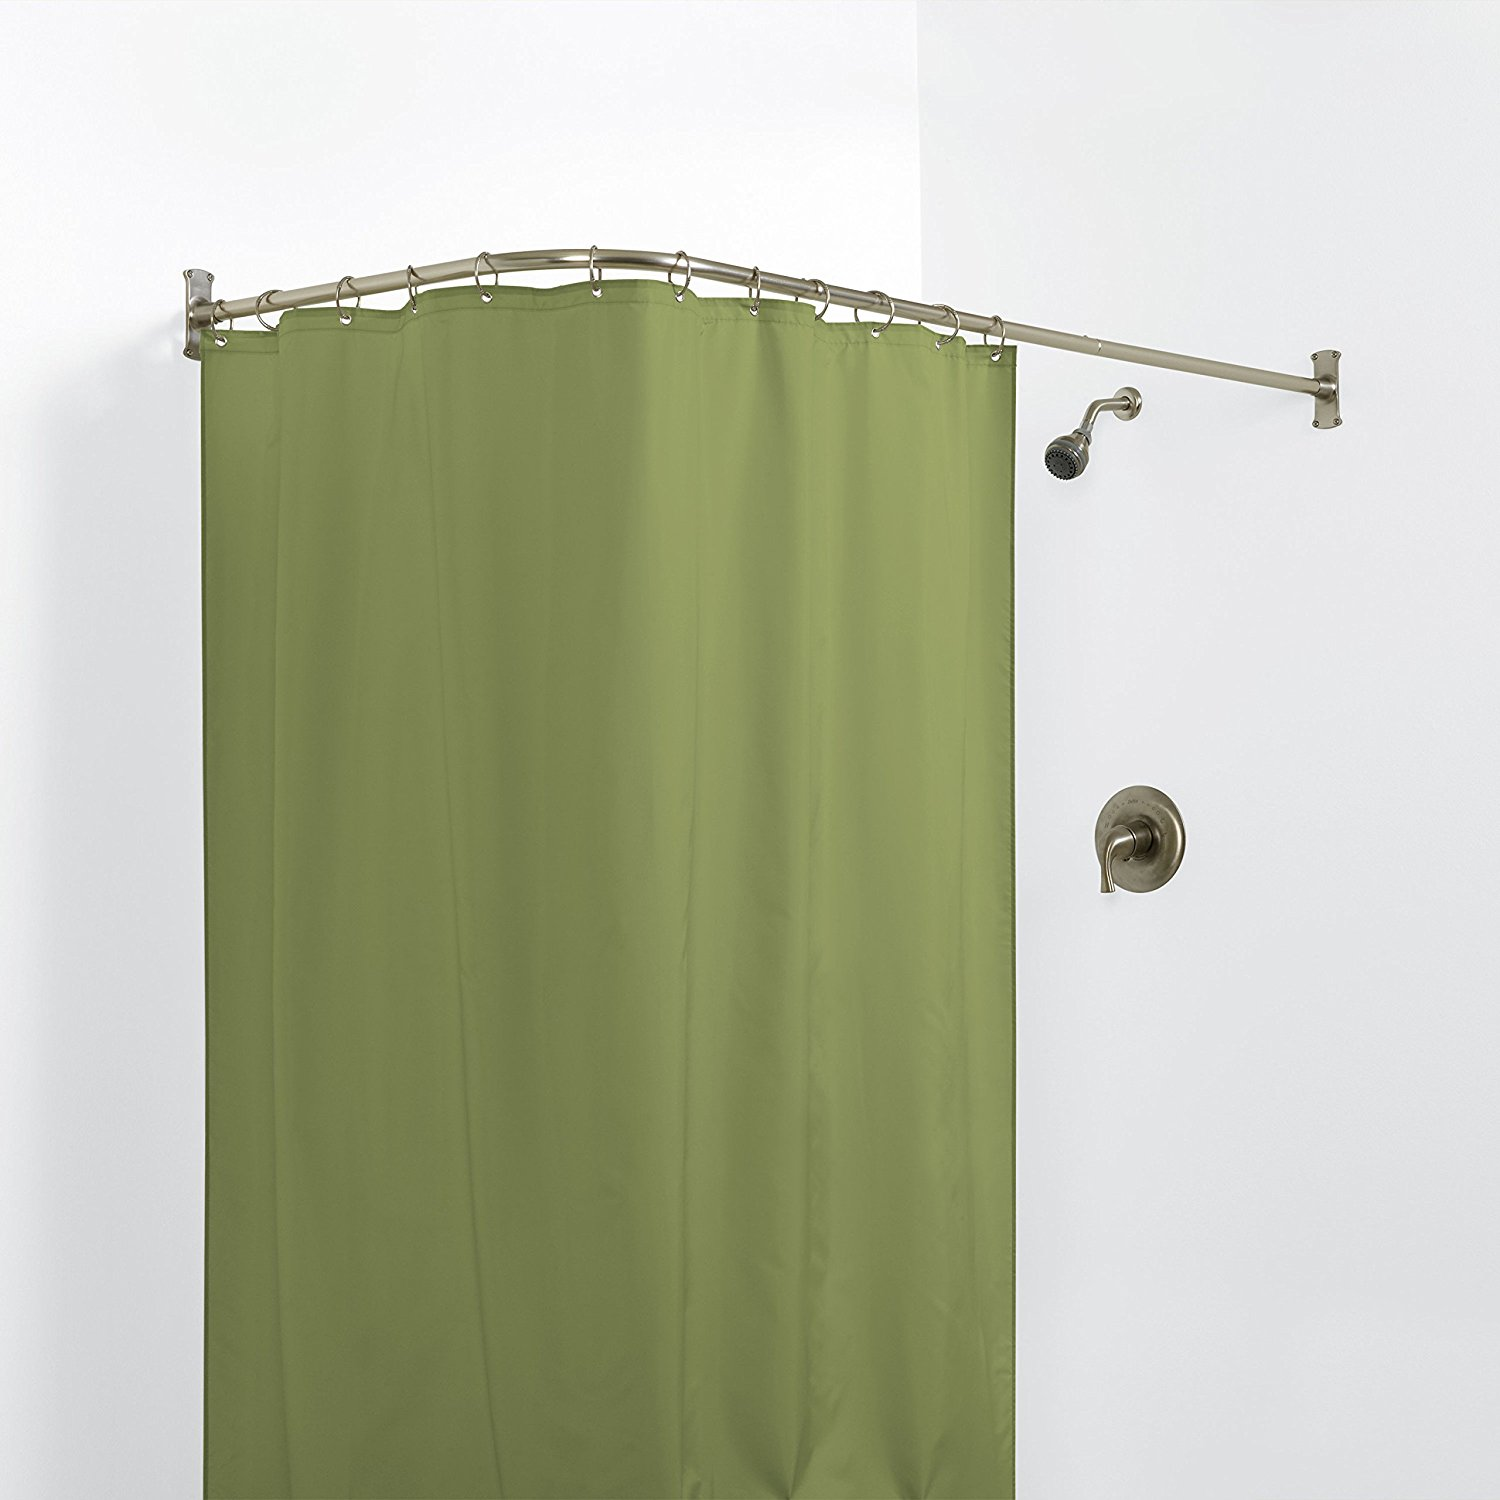 Shower Curtain Rod Ideas Royals Courage Key Concepts For